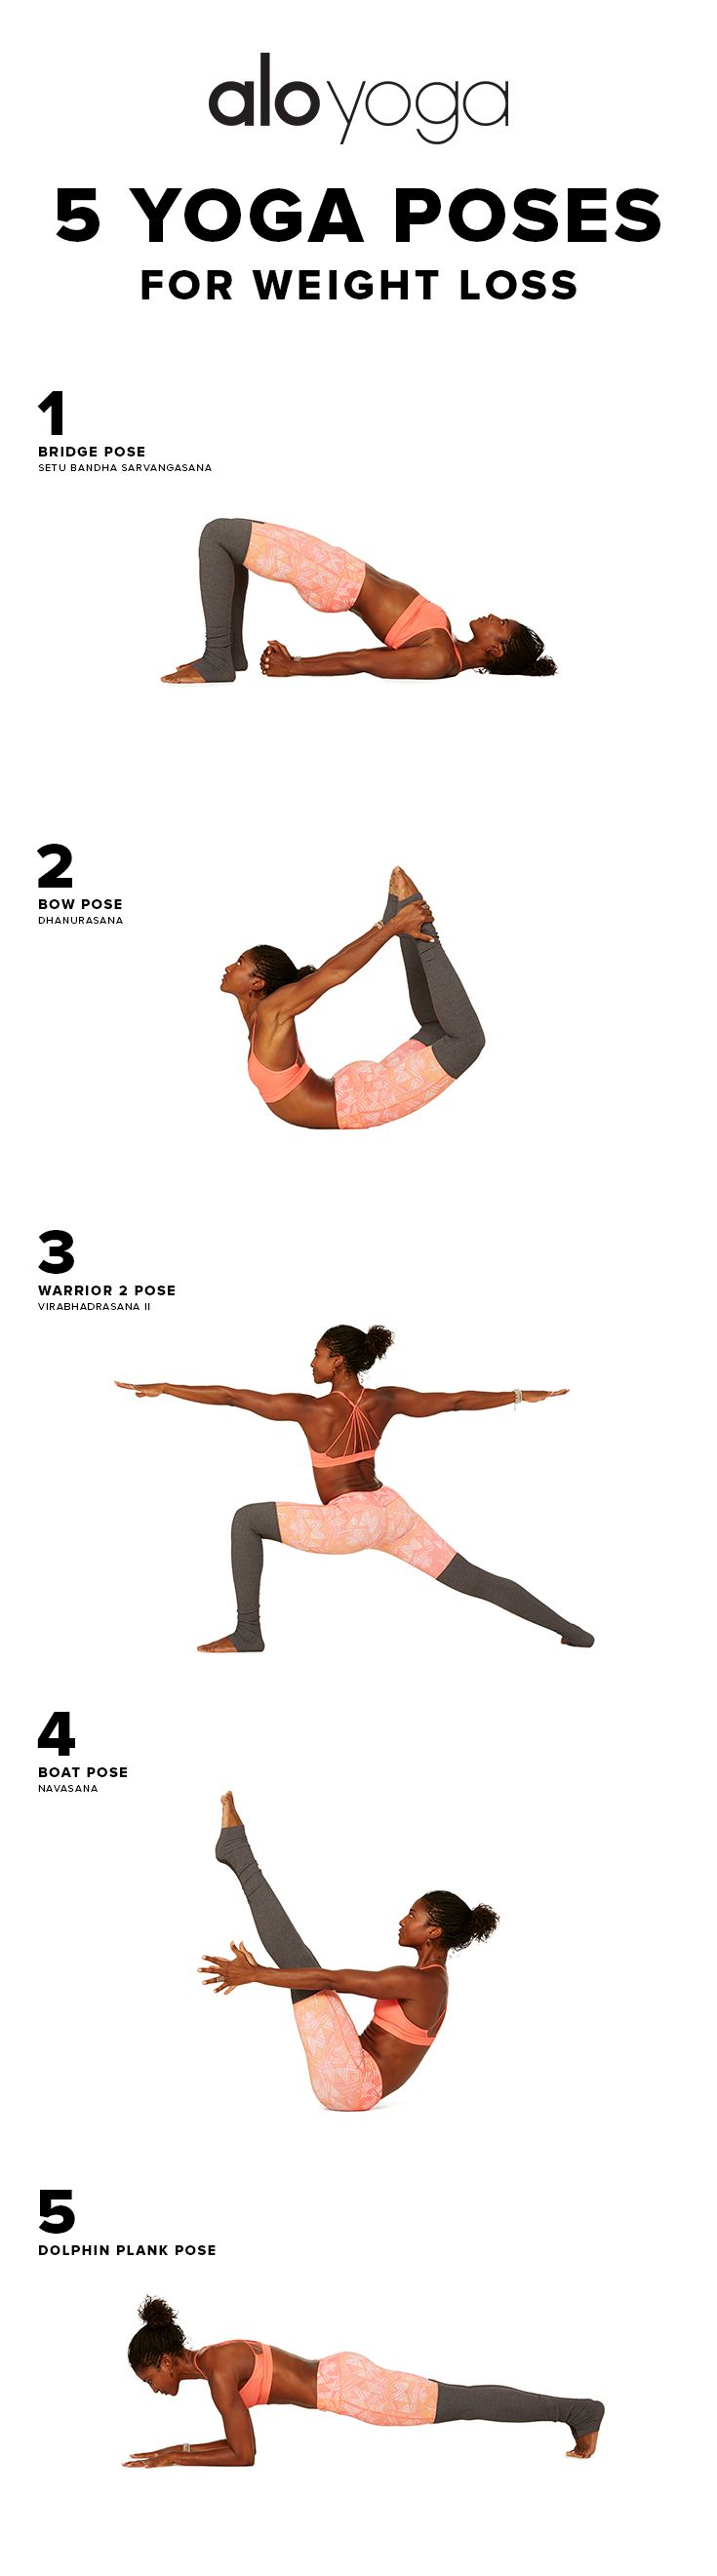 5 Yoga Poses For WeightLoss